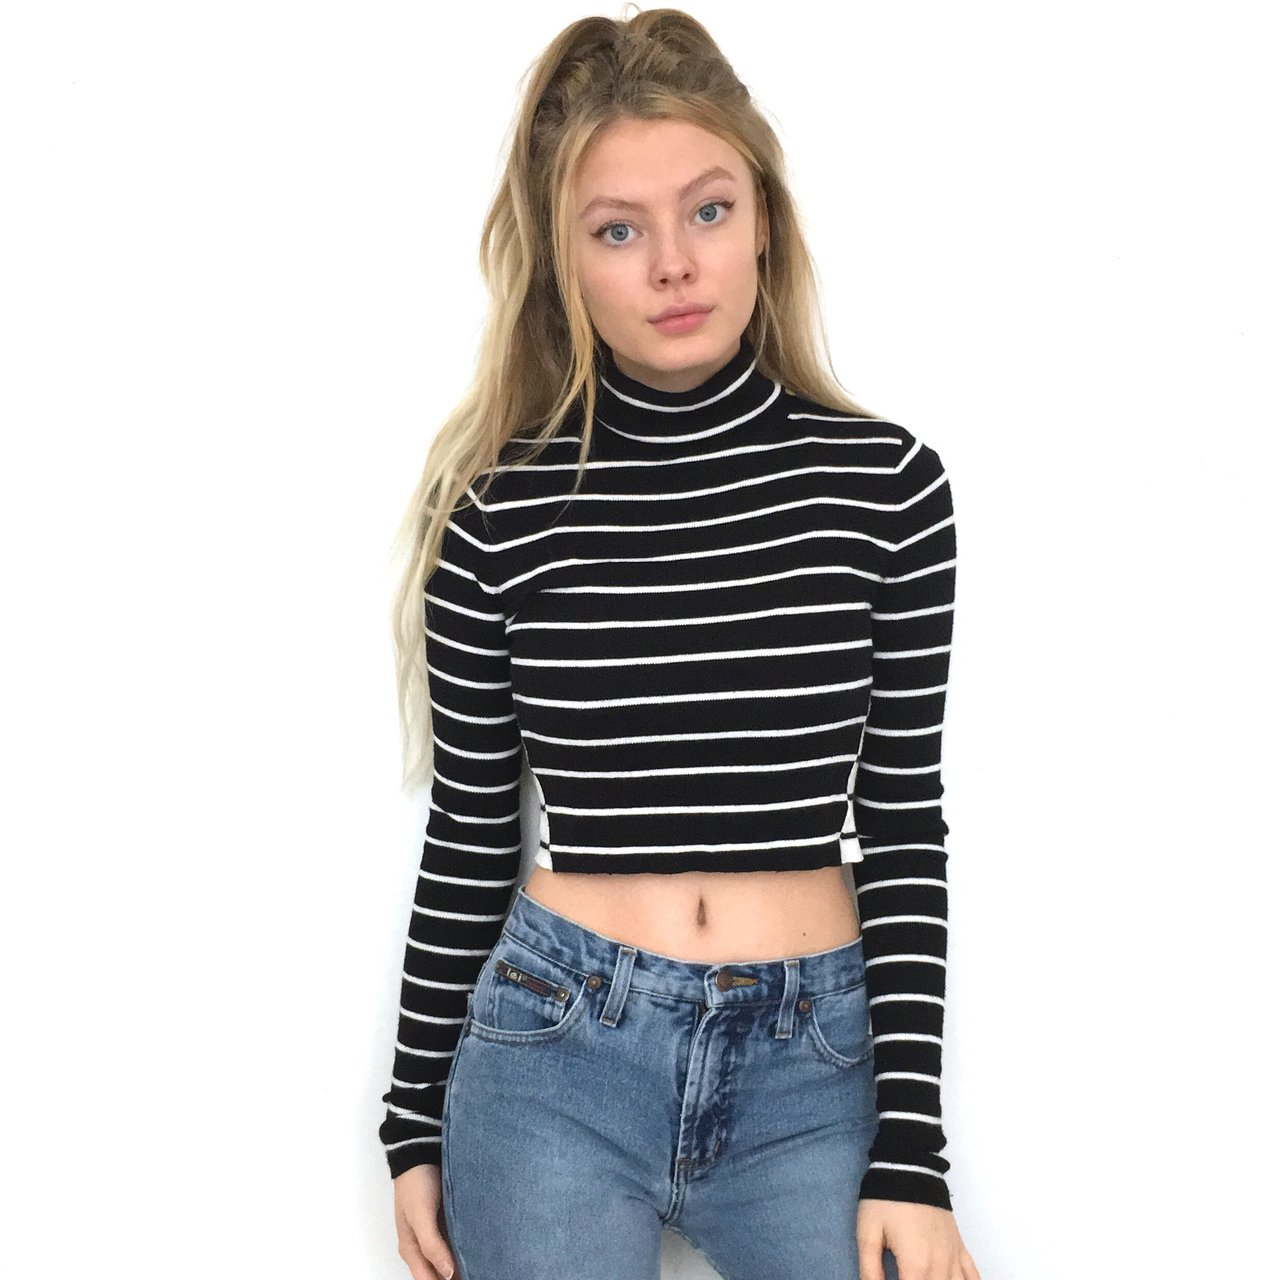 48b7b706bb0a3 Black and White Striped Turtleneck Crop Top. This sweater is - Depop